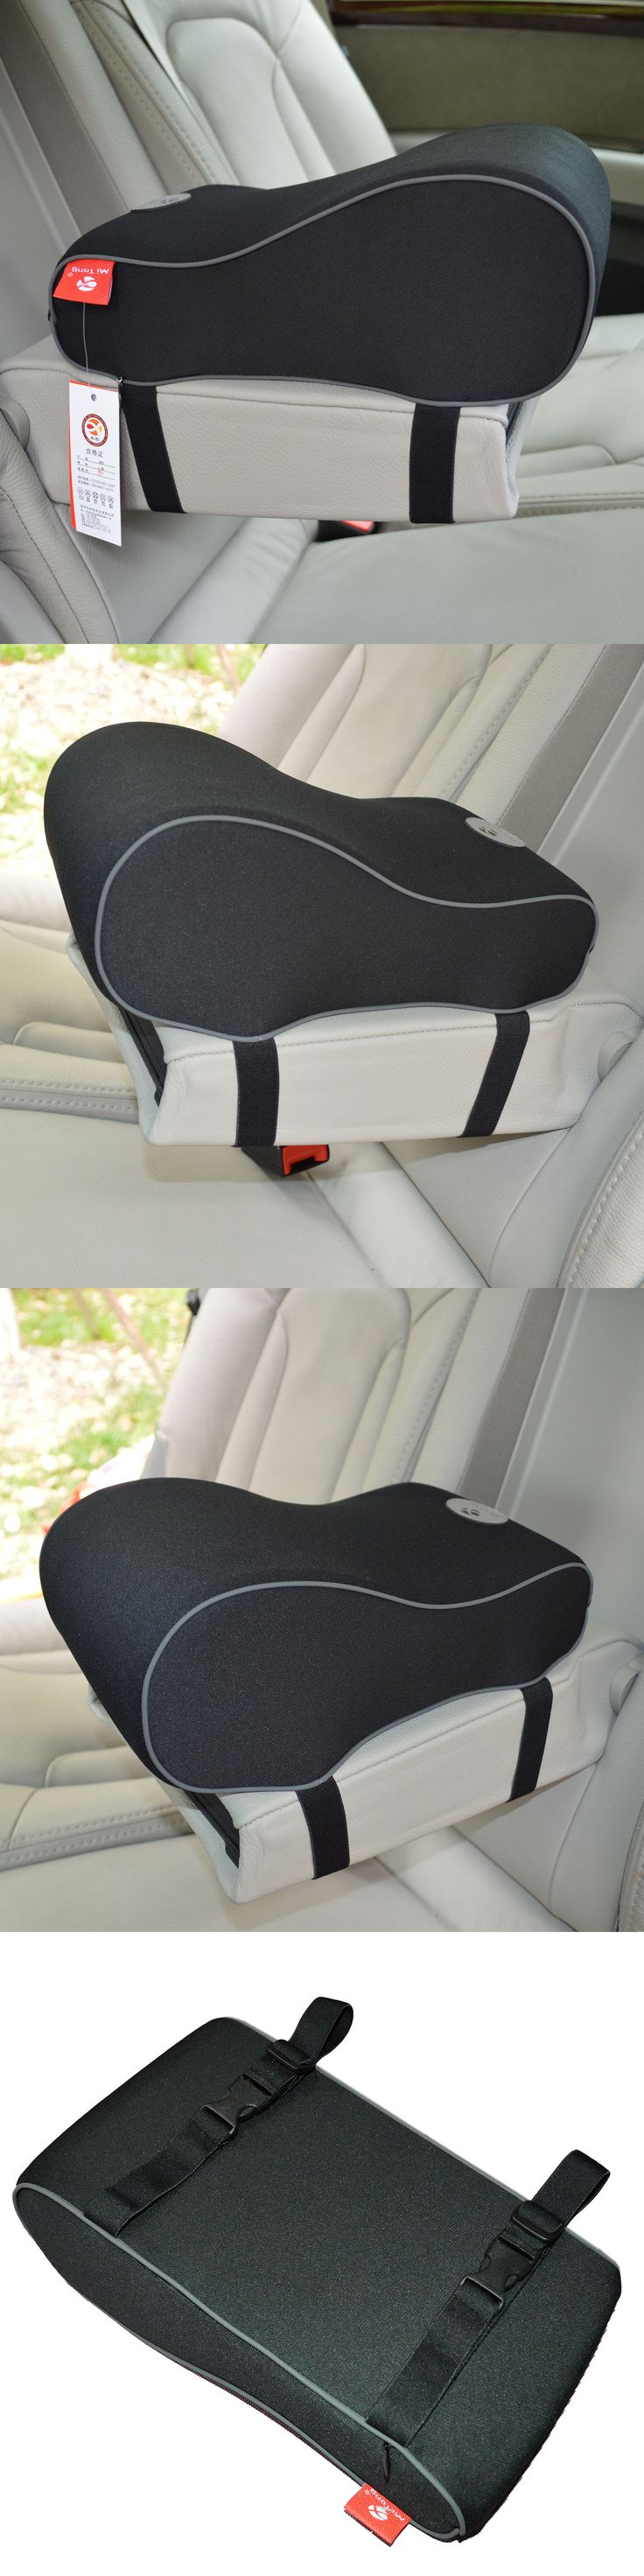 Wood swivel desk chair laquered finish warms amp padded seat ebay - Luxury Cars Luxury Cushion Car Seat Cushion Armrest Center Consoles Cushion Pillow Pad Black